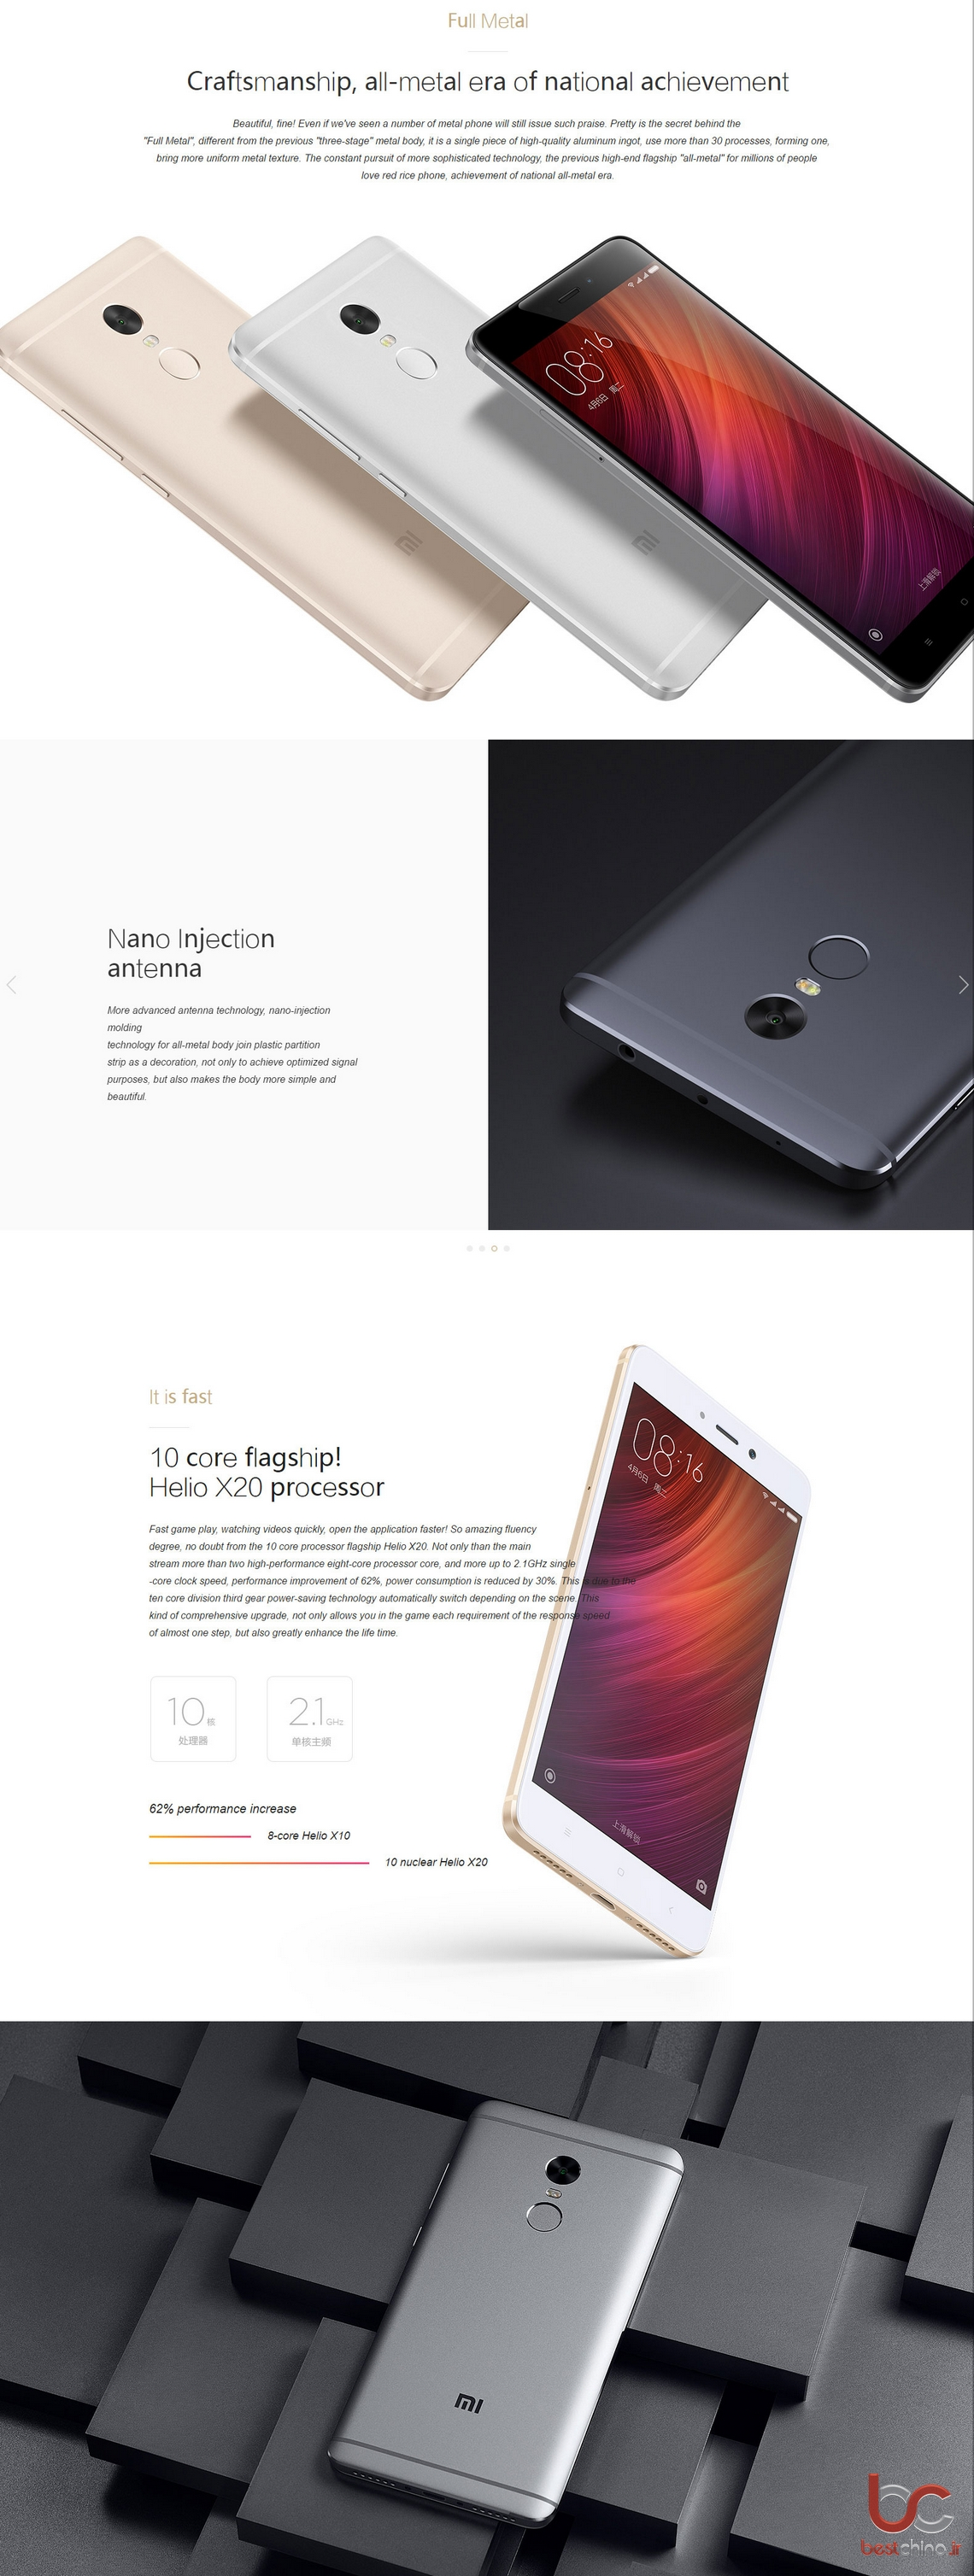 xiaomi-redmi-note-4-2